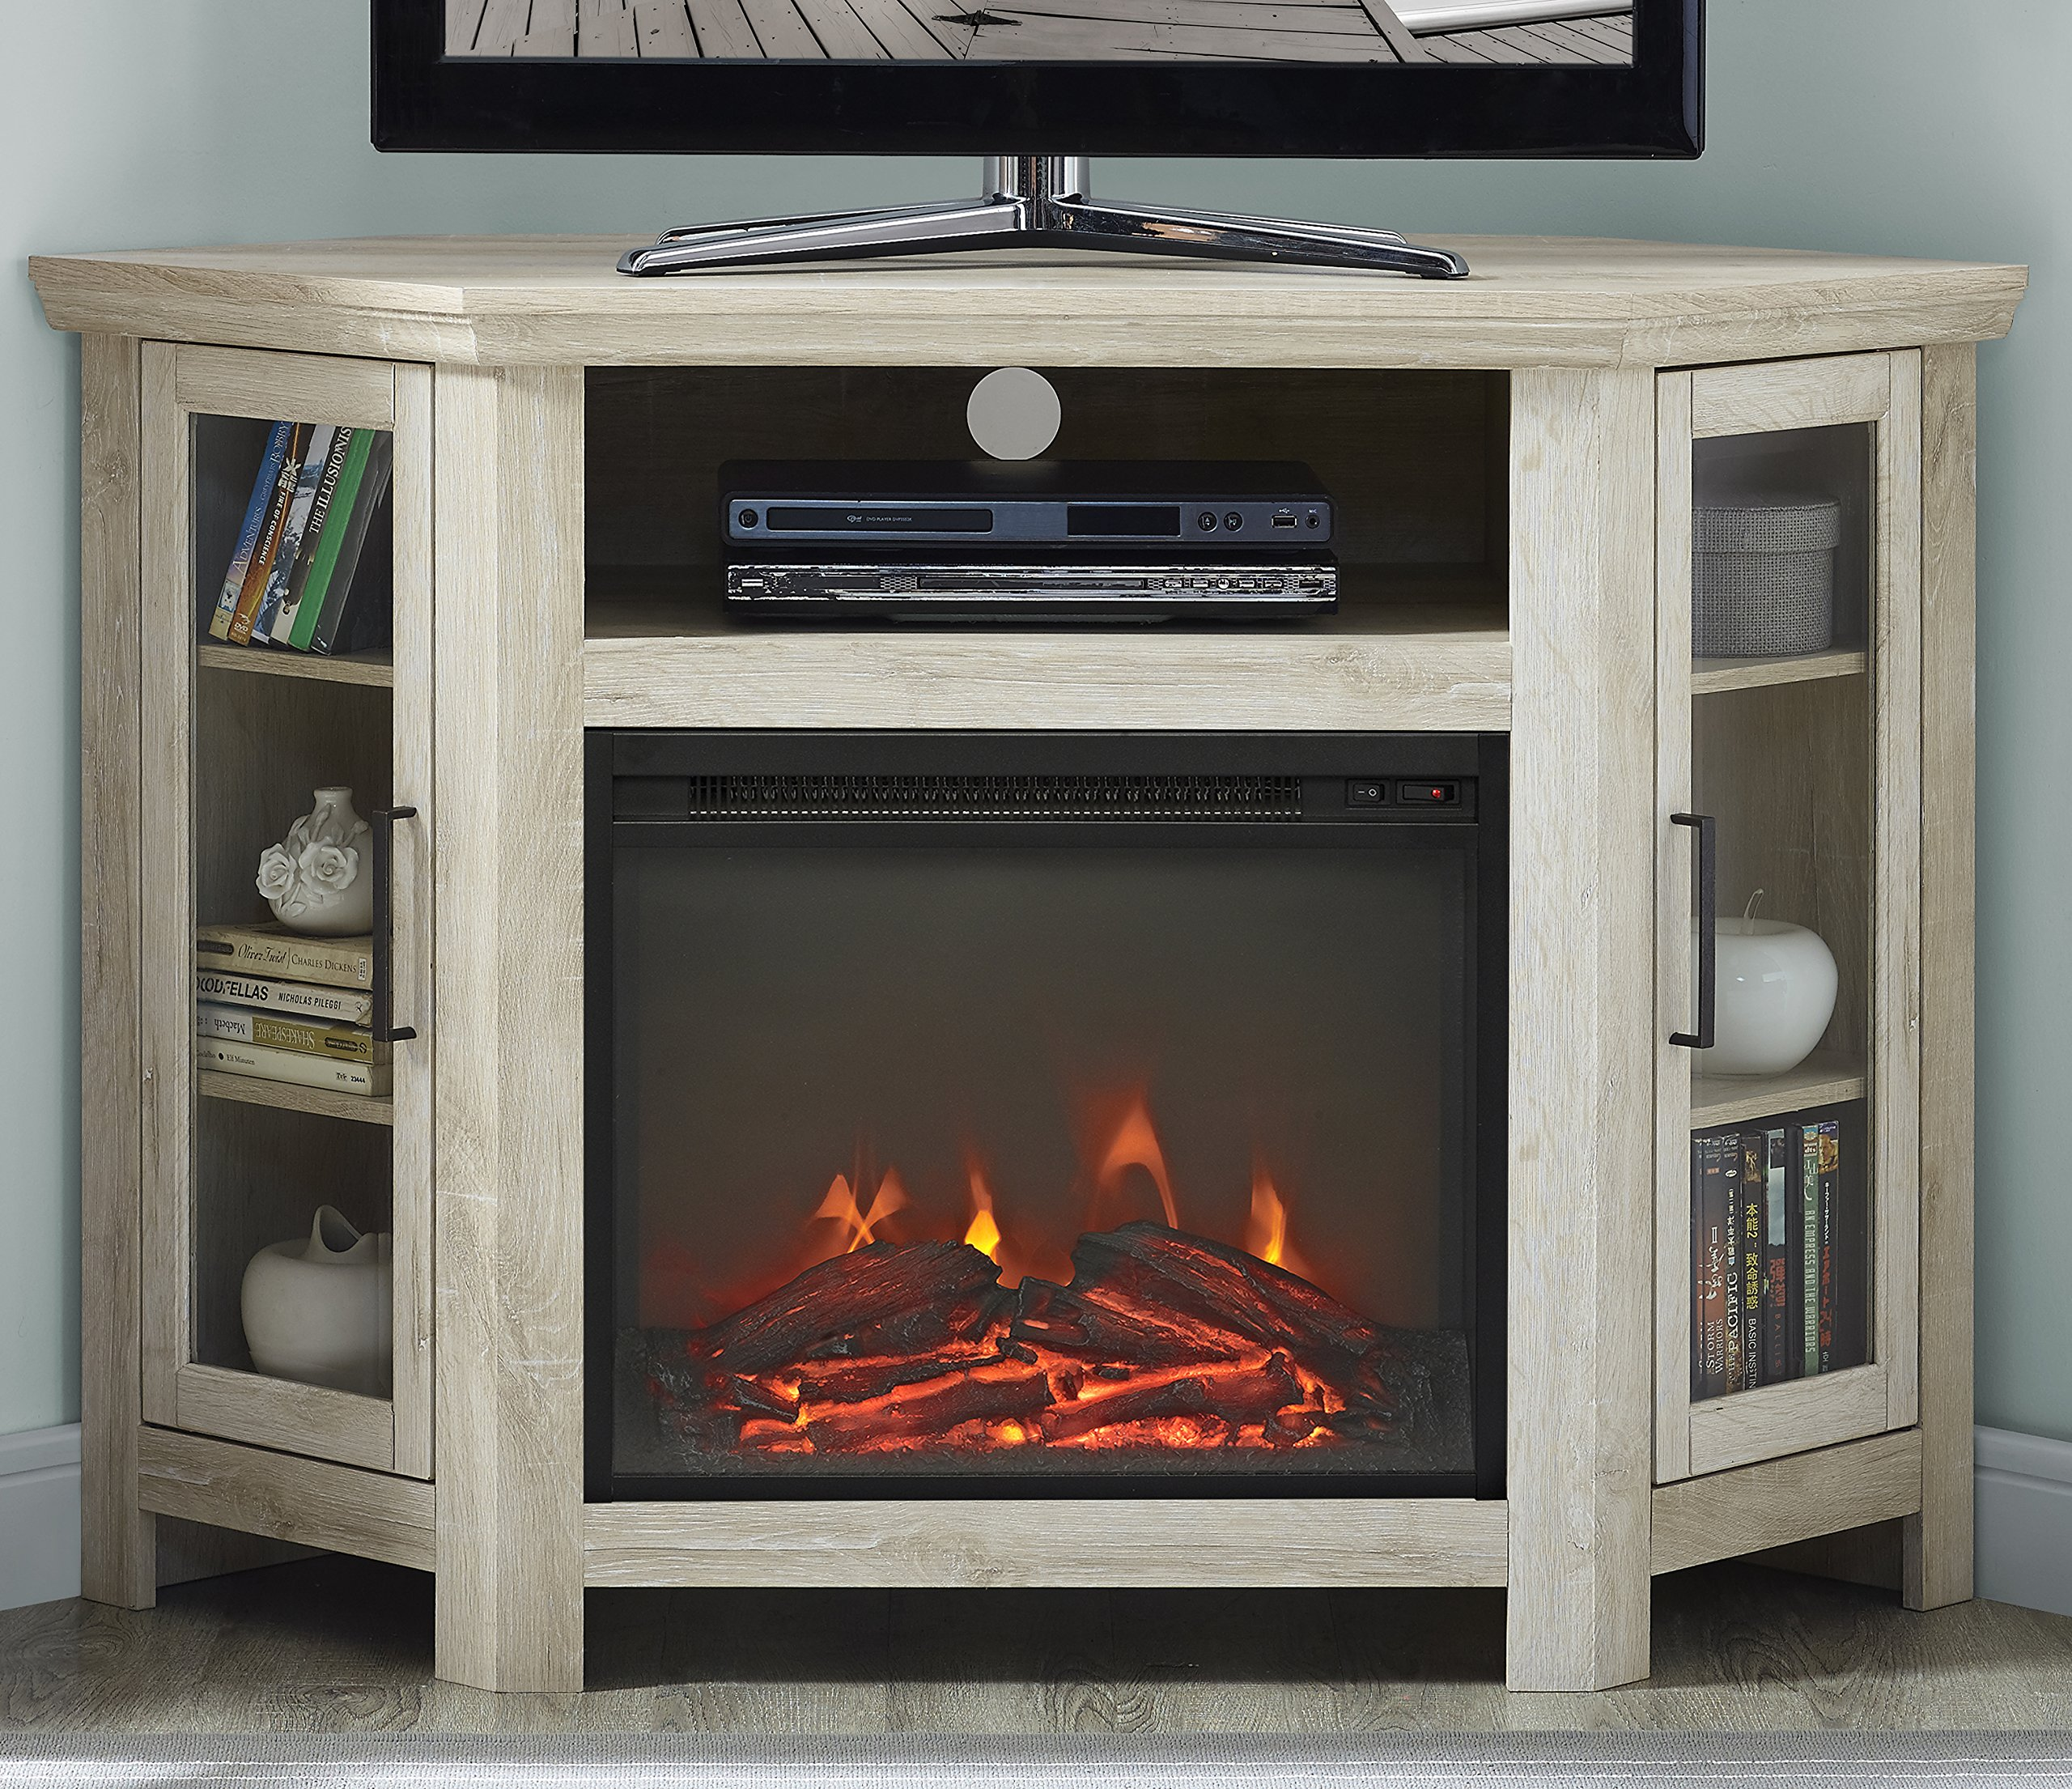 WE Furniture 48'' Wood Corner Fireplace Media TV Stand Console - White Oak by WE Furniture